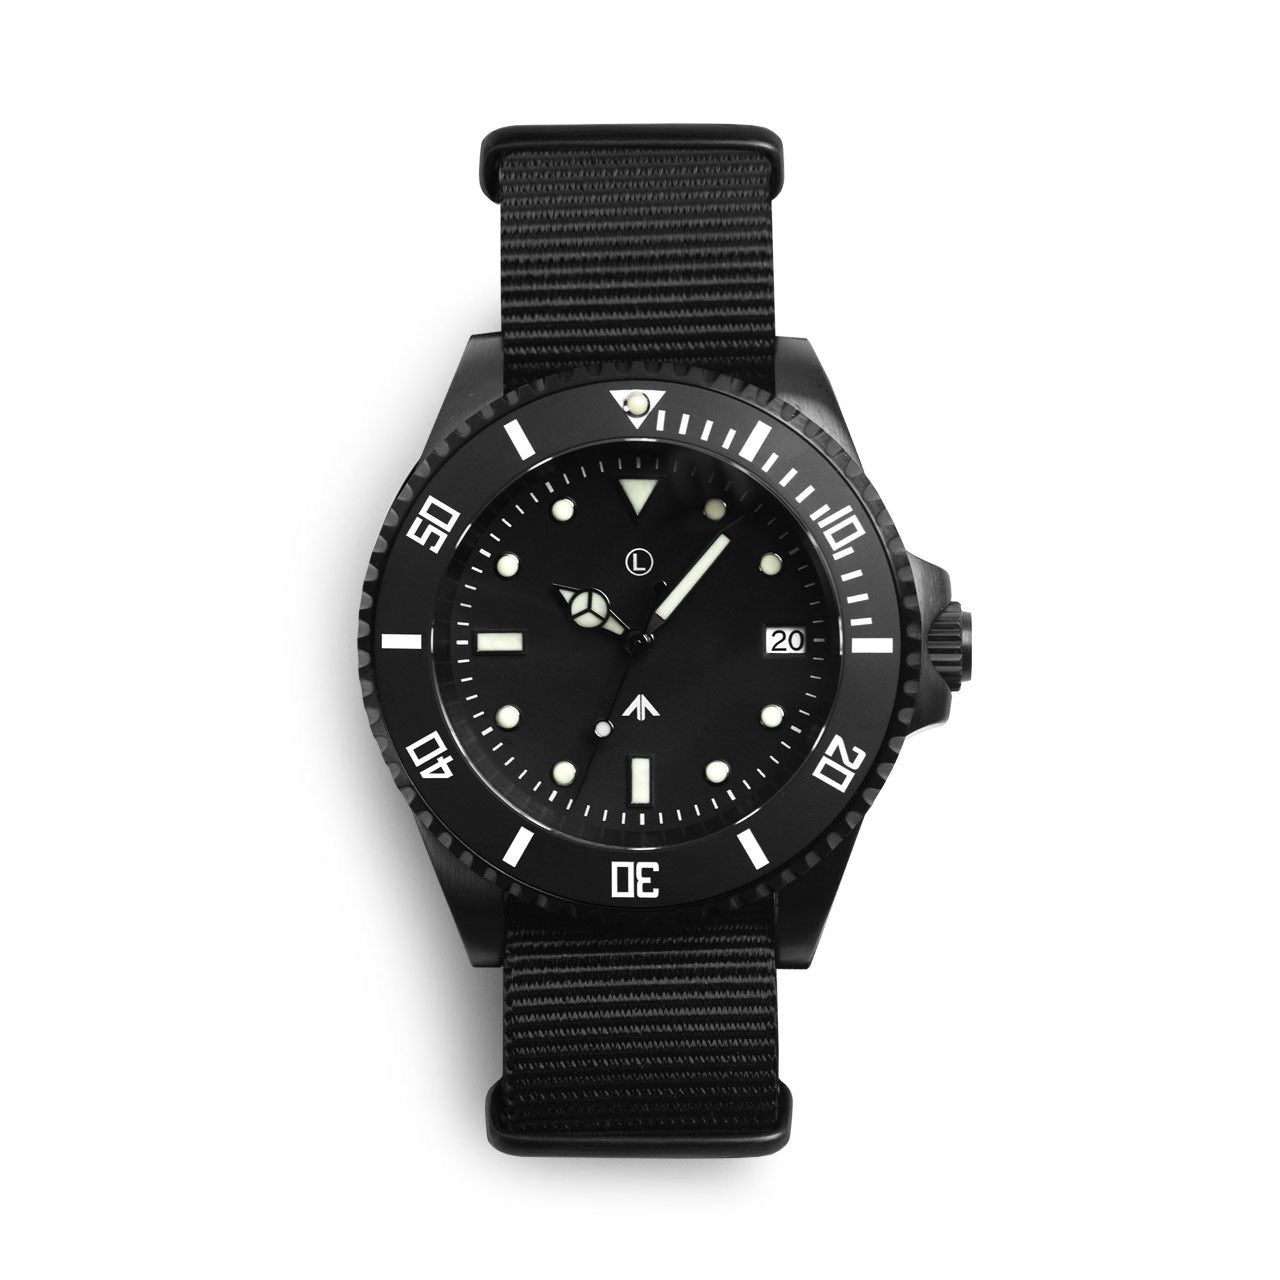 MWC Black Military Sub Watch